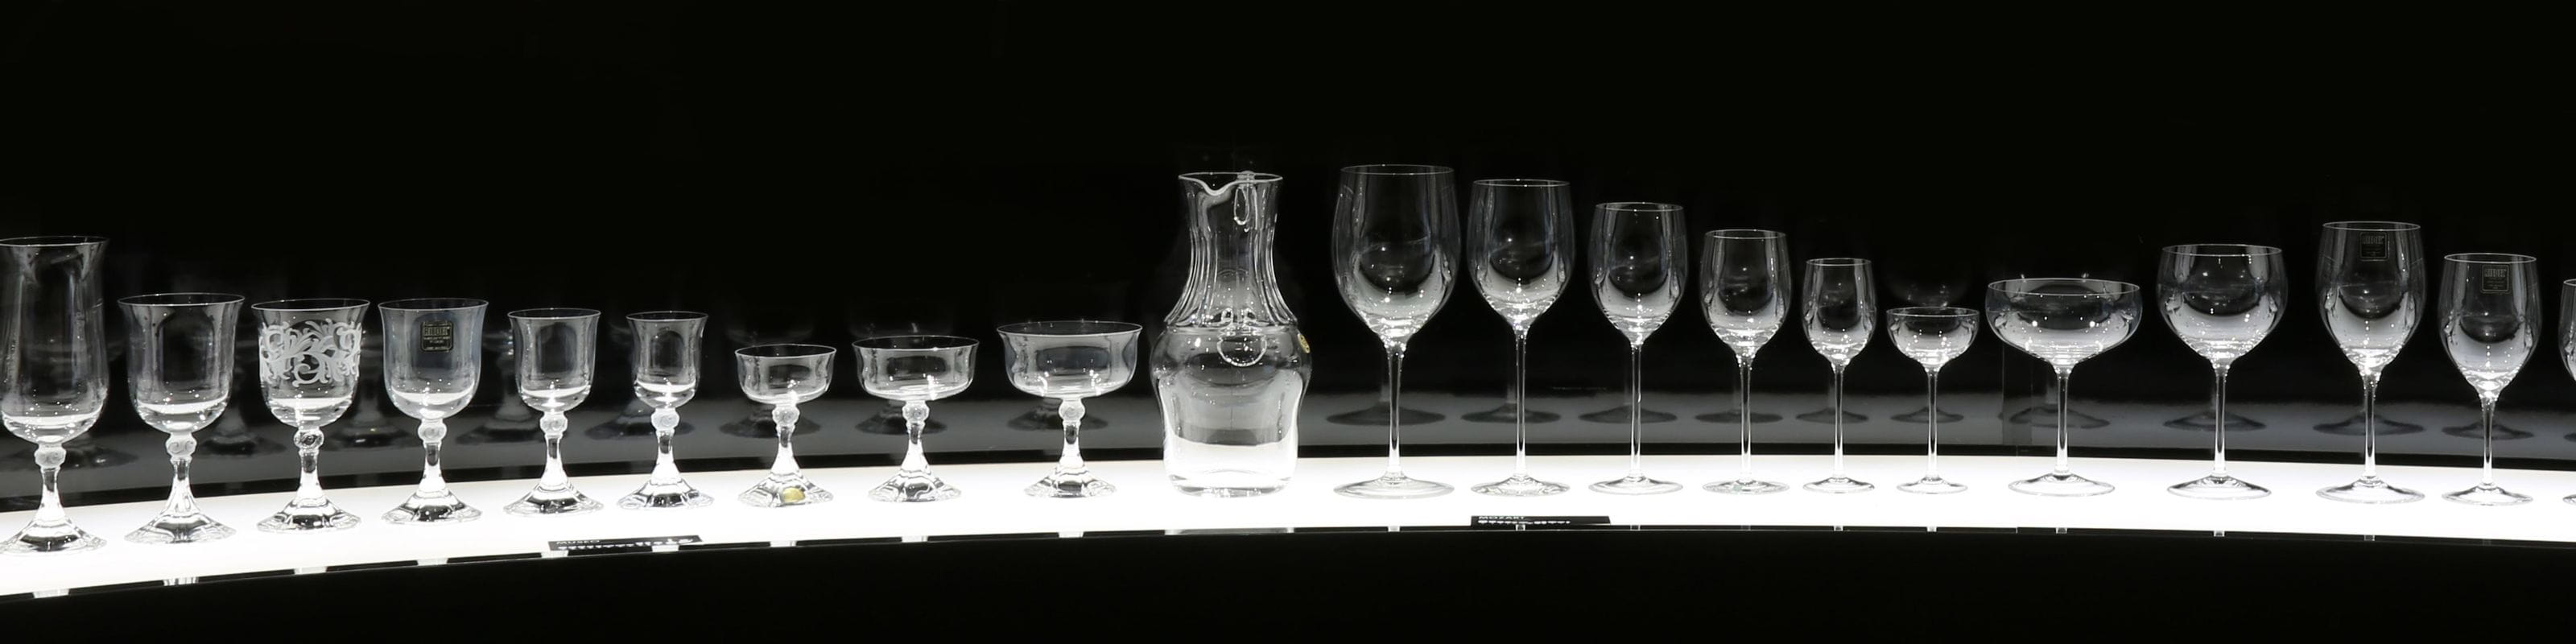 Exhibits of the RIEDEL Museum Kufstein